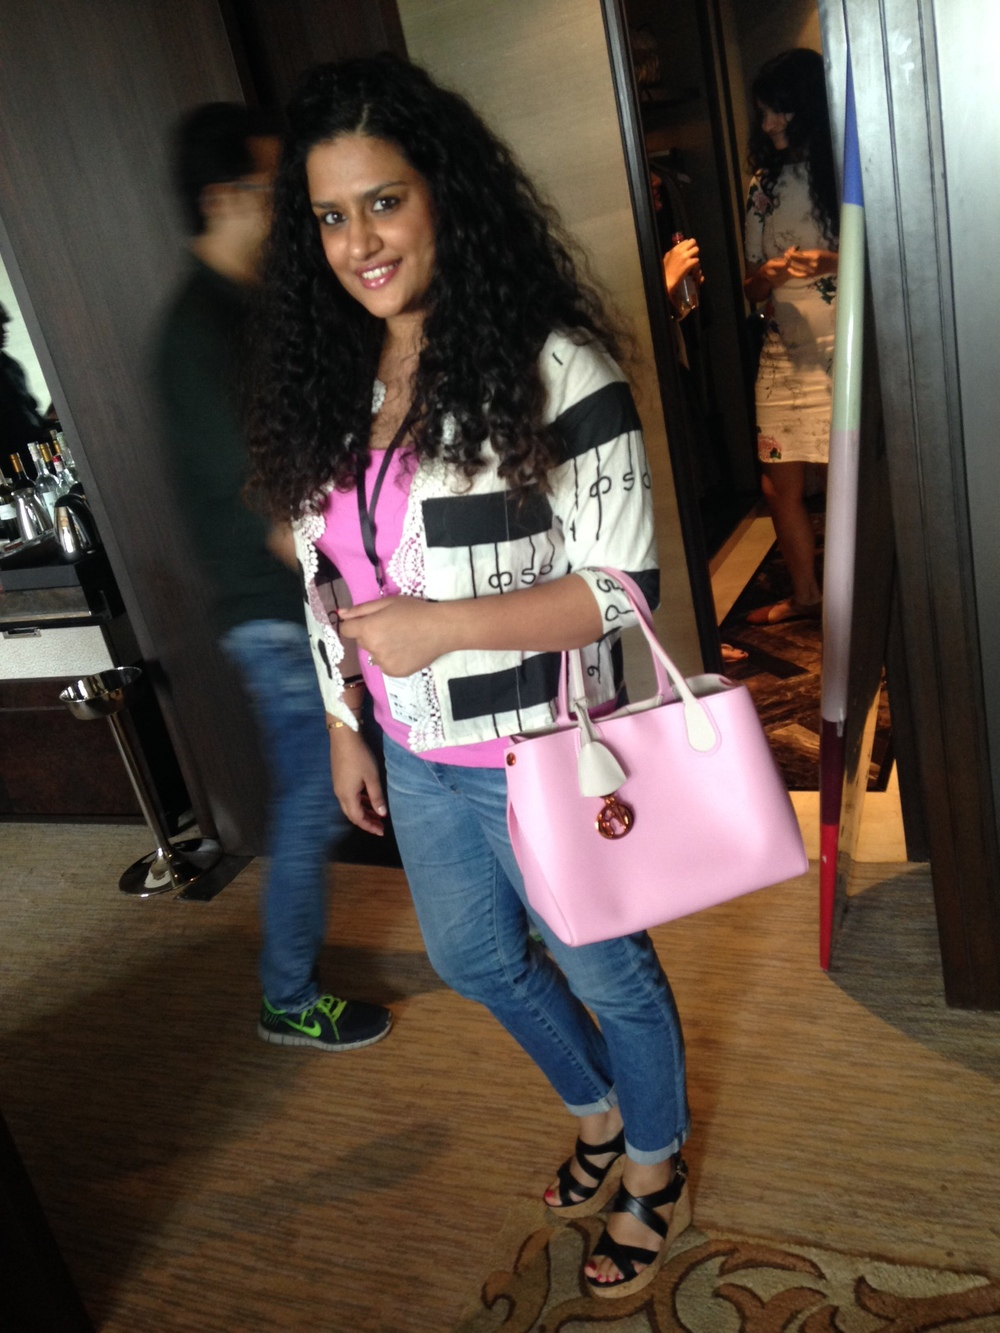 Jacket - Masaba Gupta, Tank - Ralph Lauren, Bag - Dior, Denims - AG Jeans, Shoes - Salvatore Ferragamo